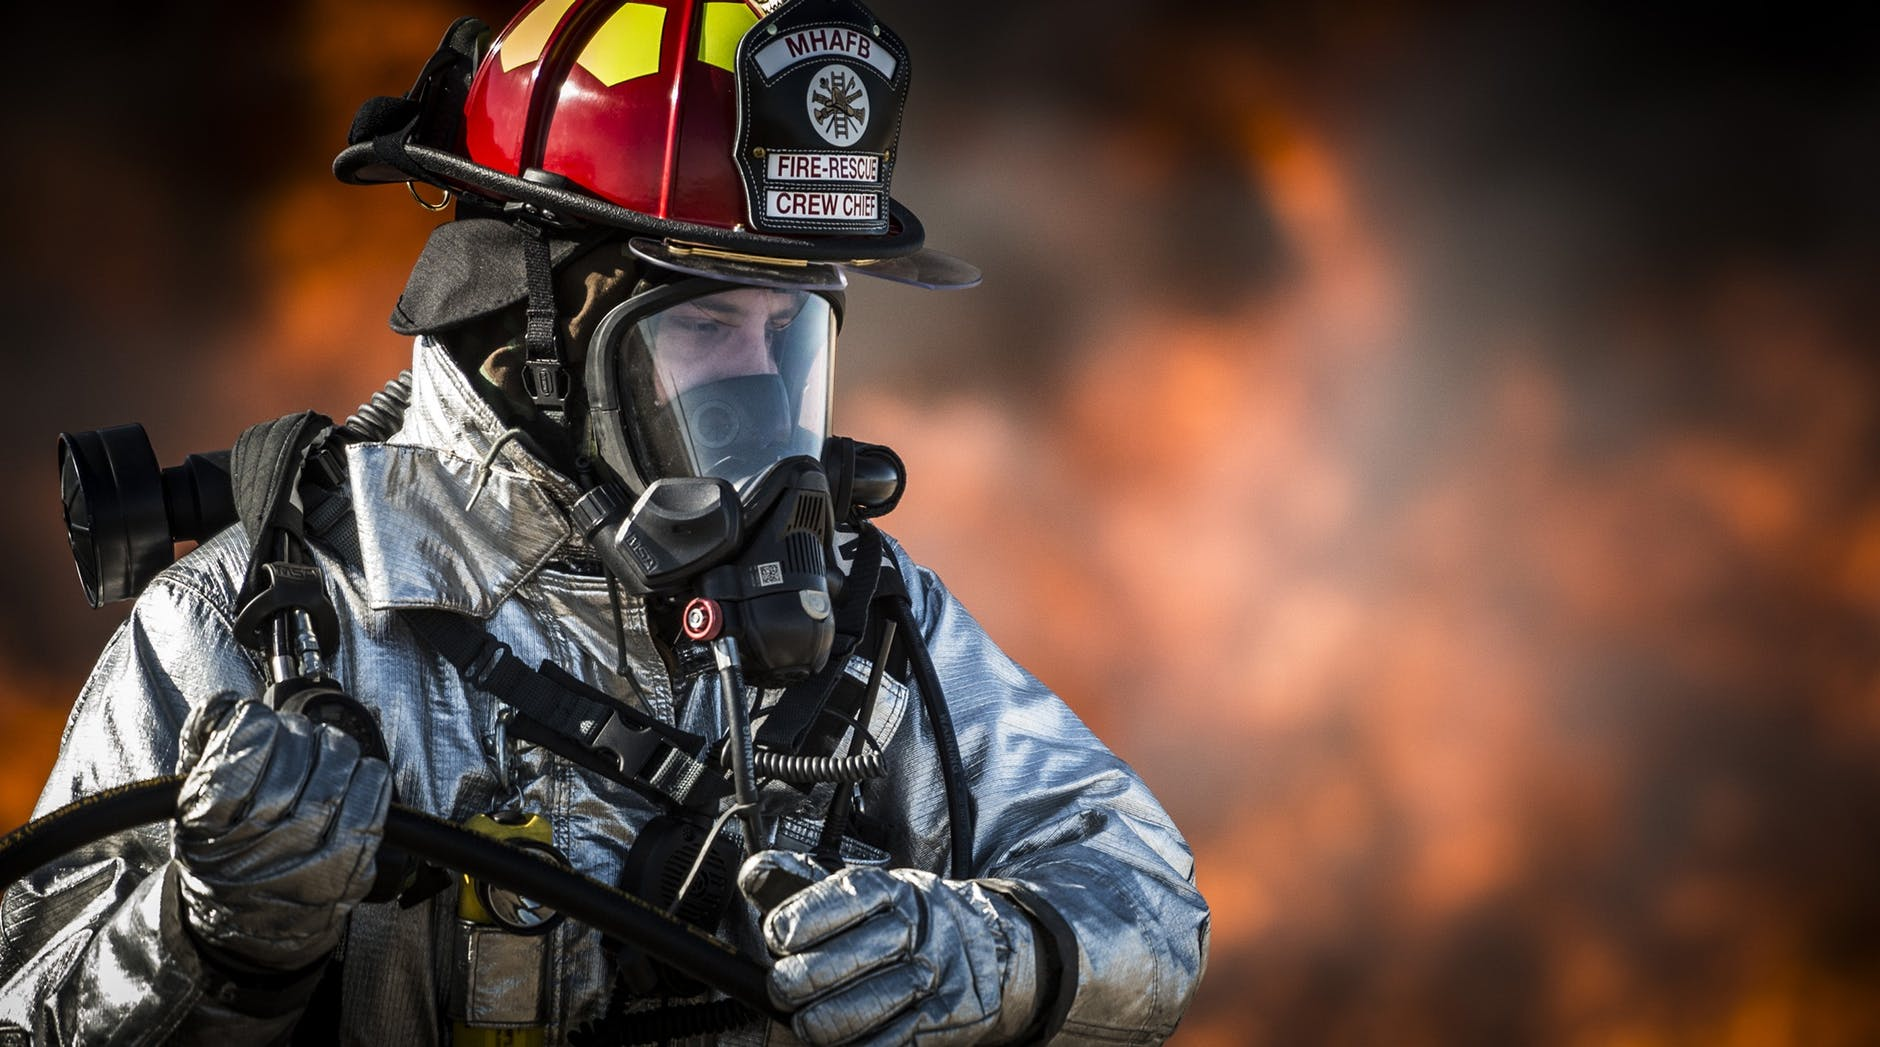 fire fighter wearing an oxygen mask and looking down